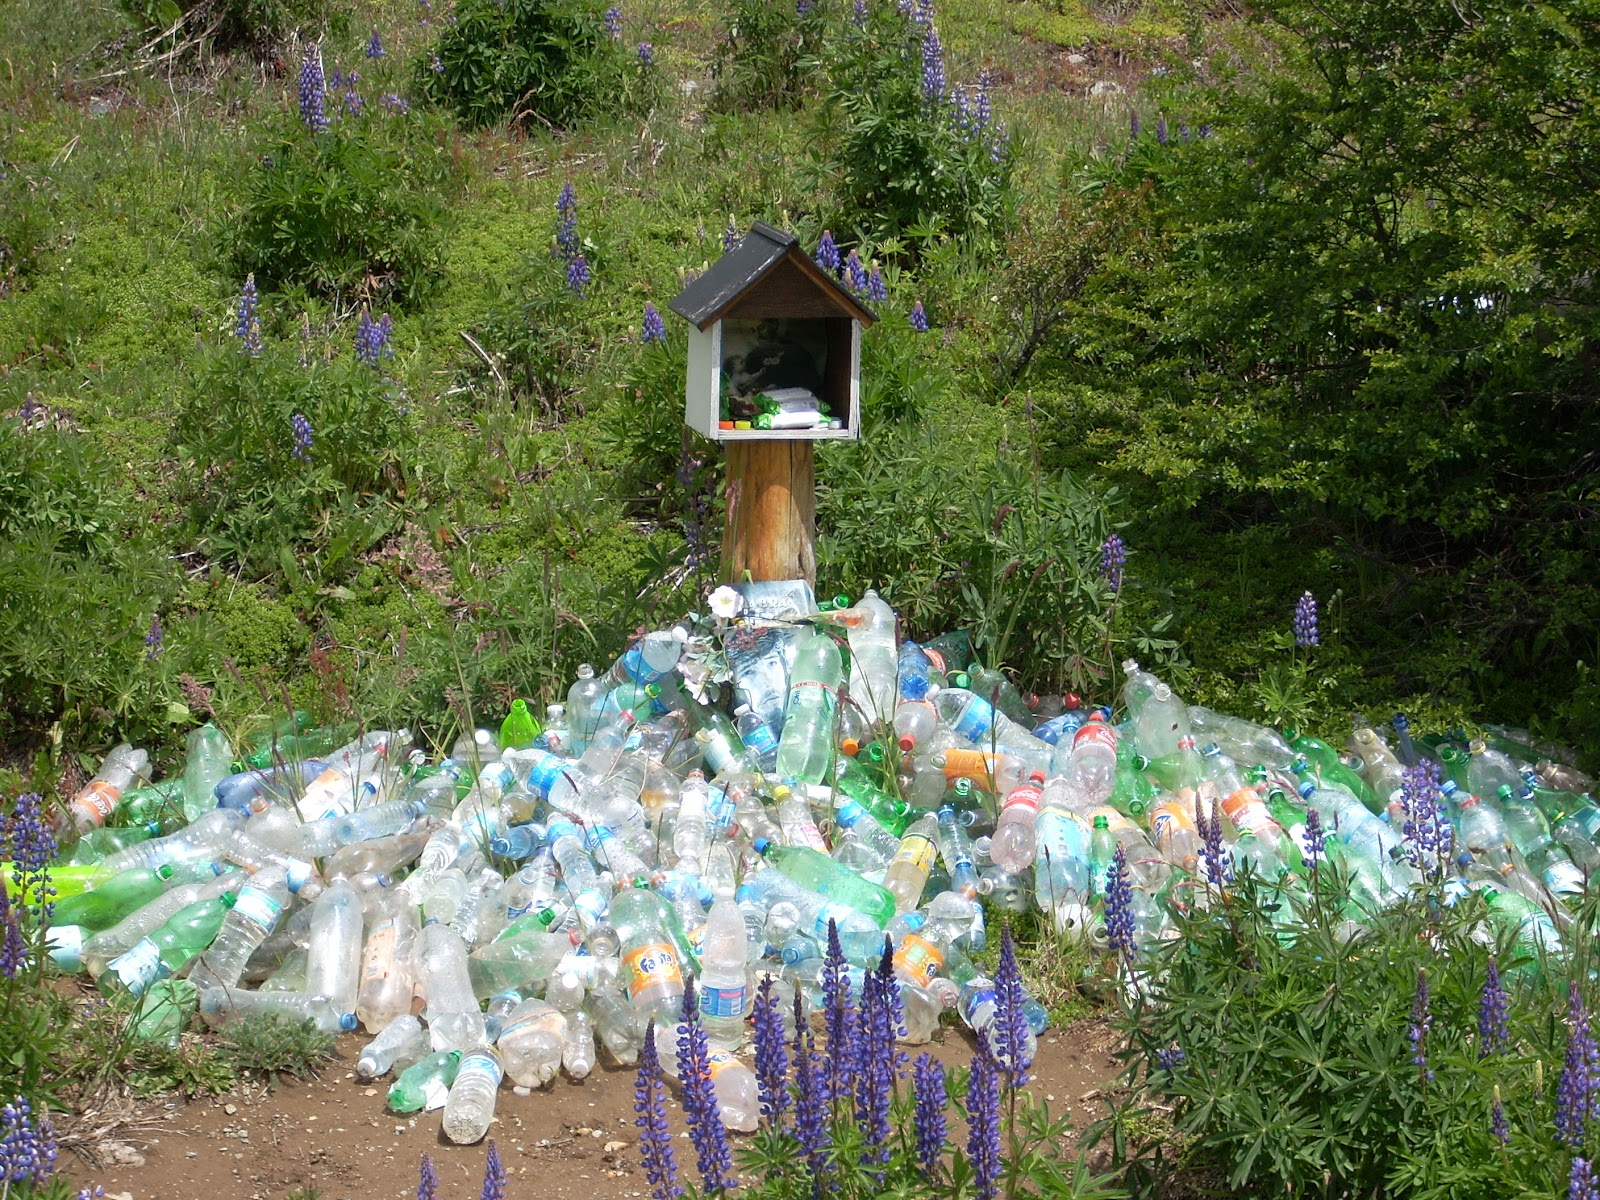 I´m not quite sure why you should leave a plastic bottle at this shrine